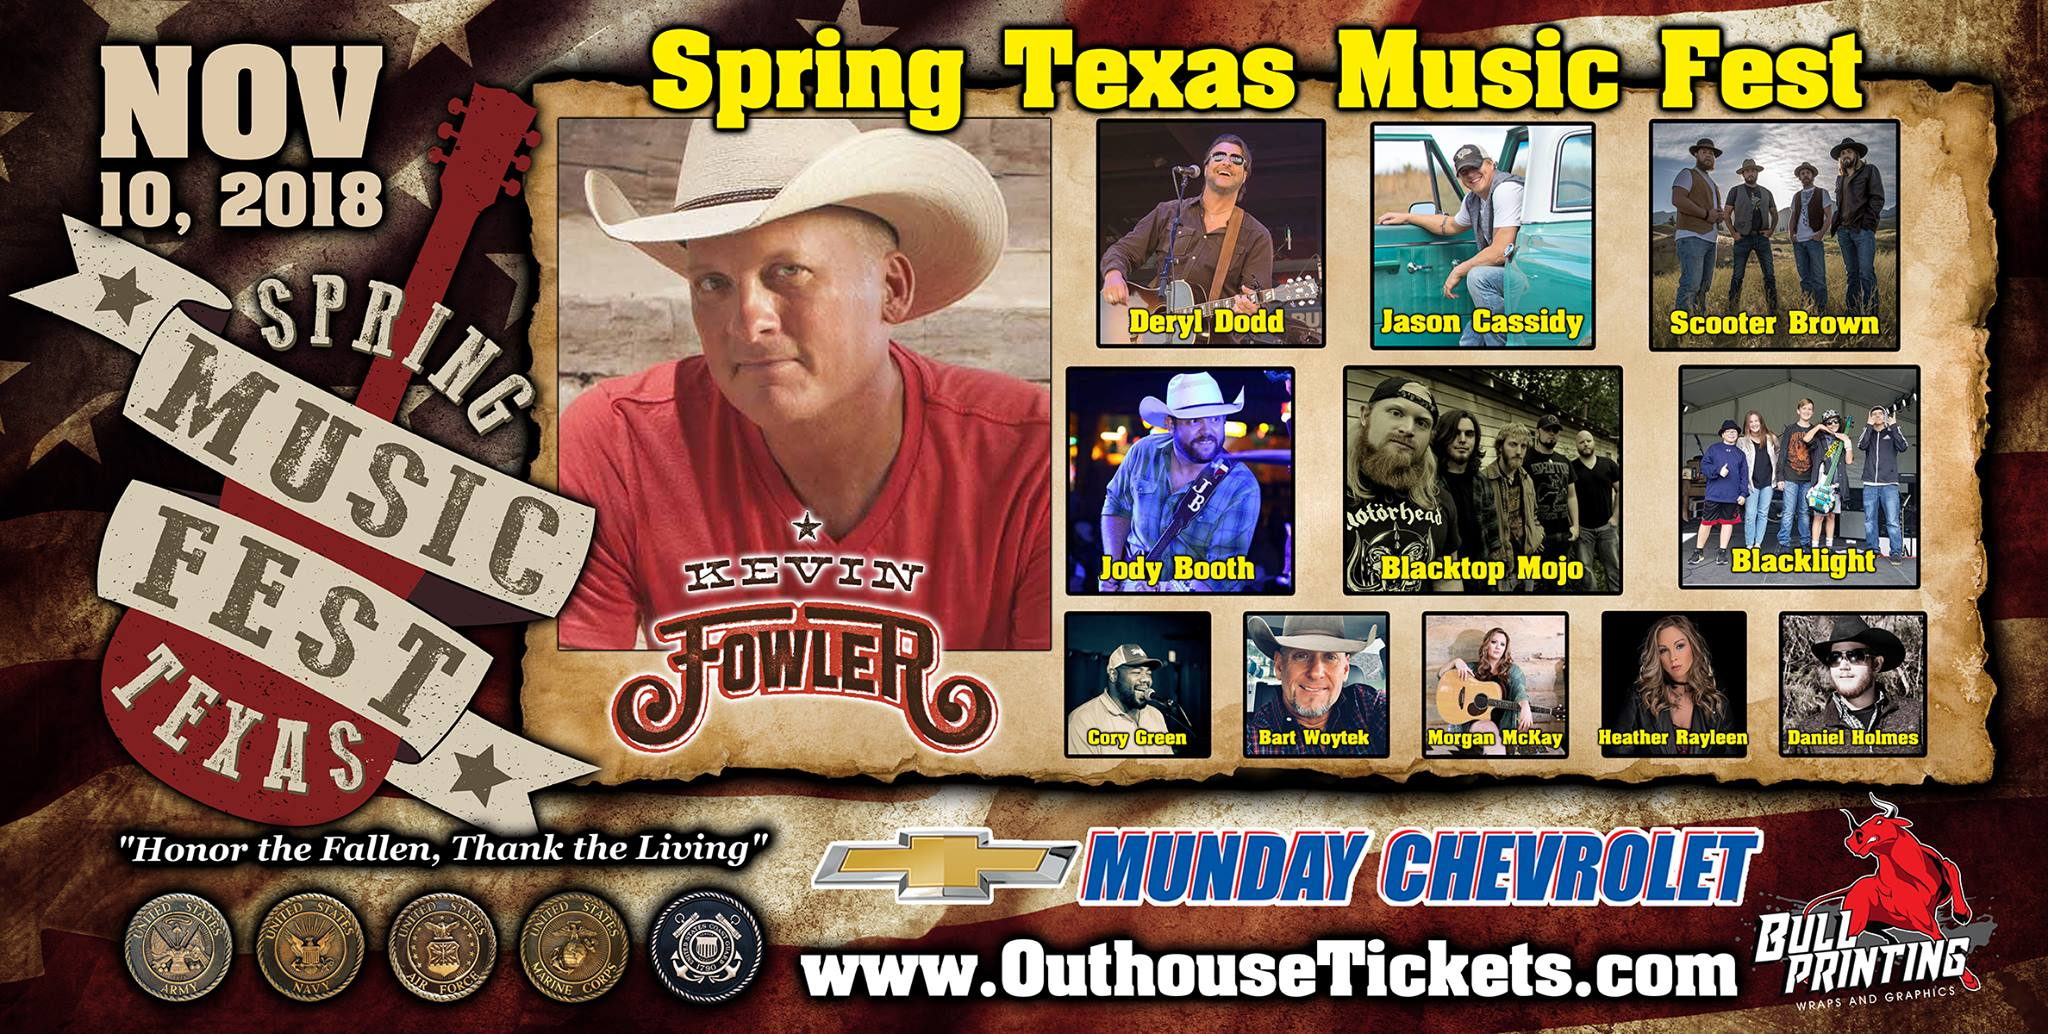 Kevin Fowler, Blacktop Mojo, Scooter Brown, Jason Cassidy, Jody Booth